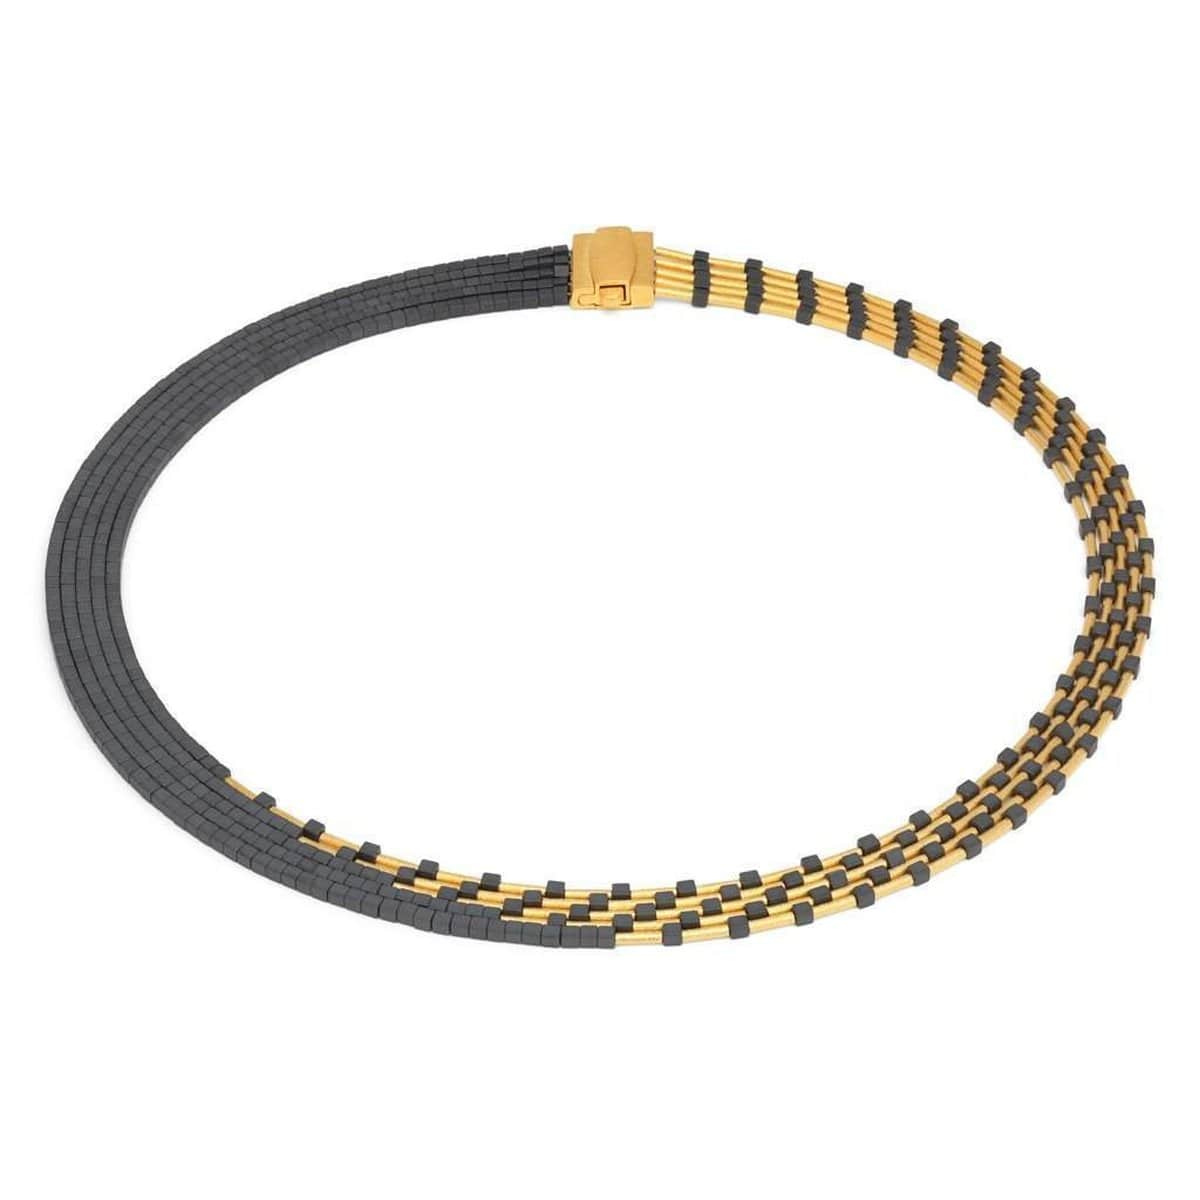 Cleopatra Hematine Necklace - 84016276